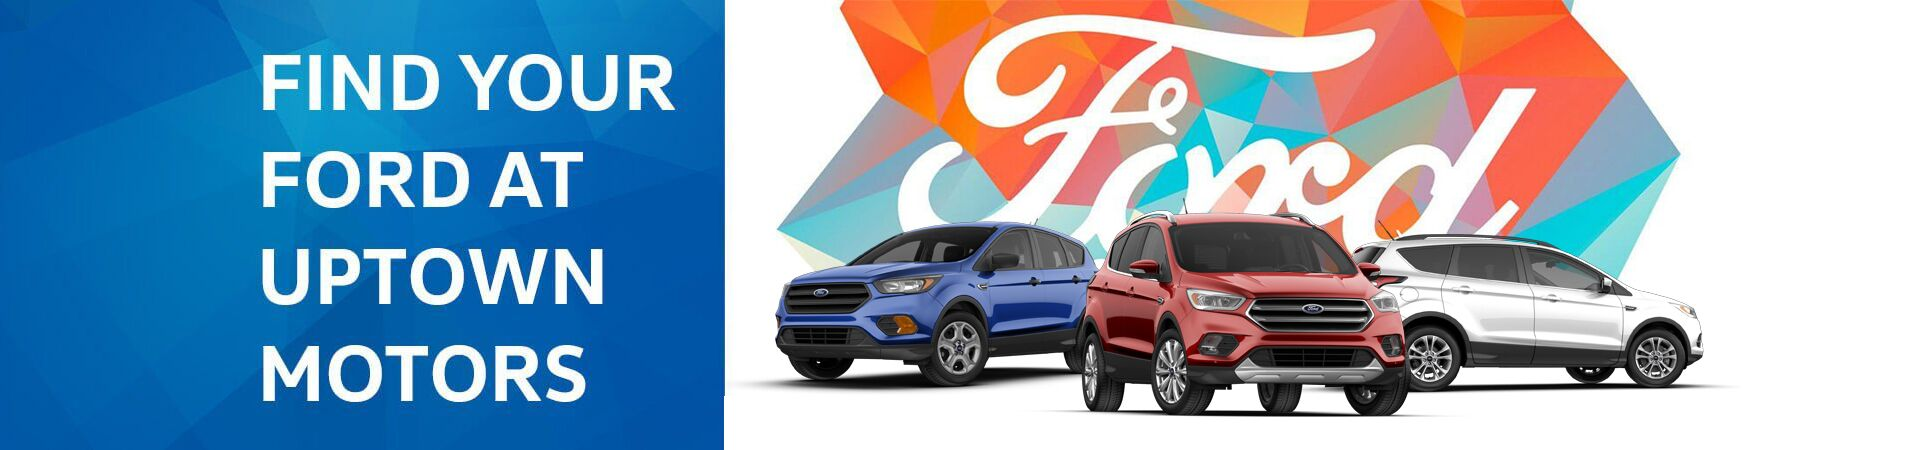 Uptown Motors Find Your Ford